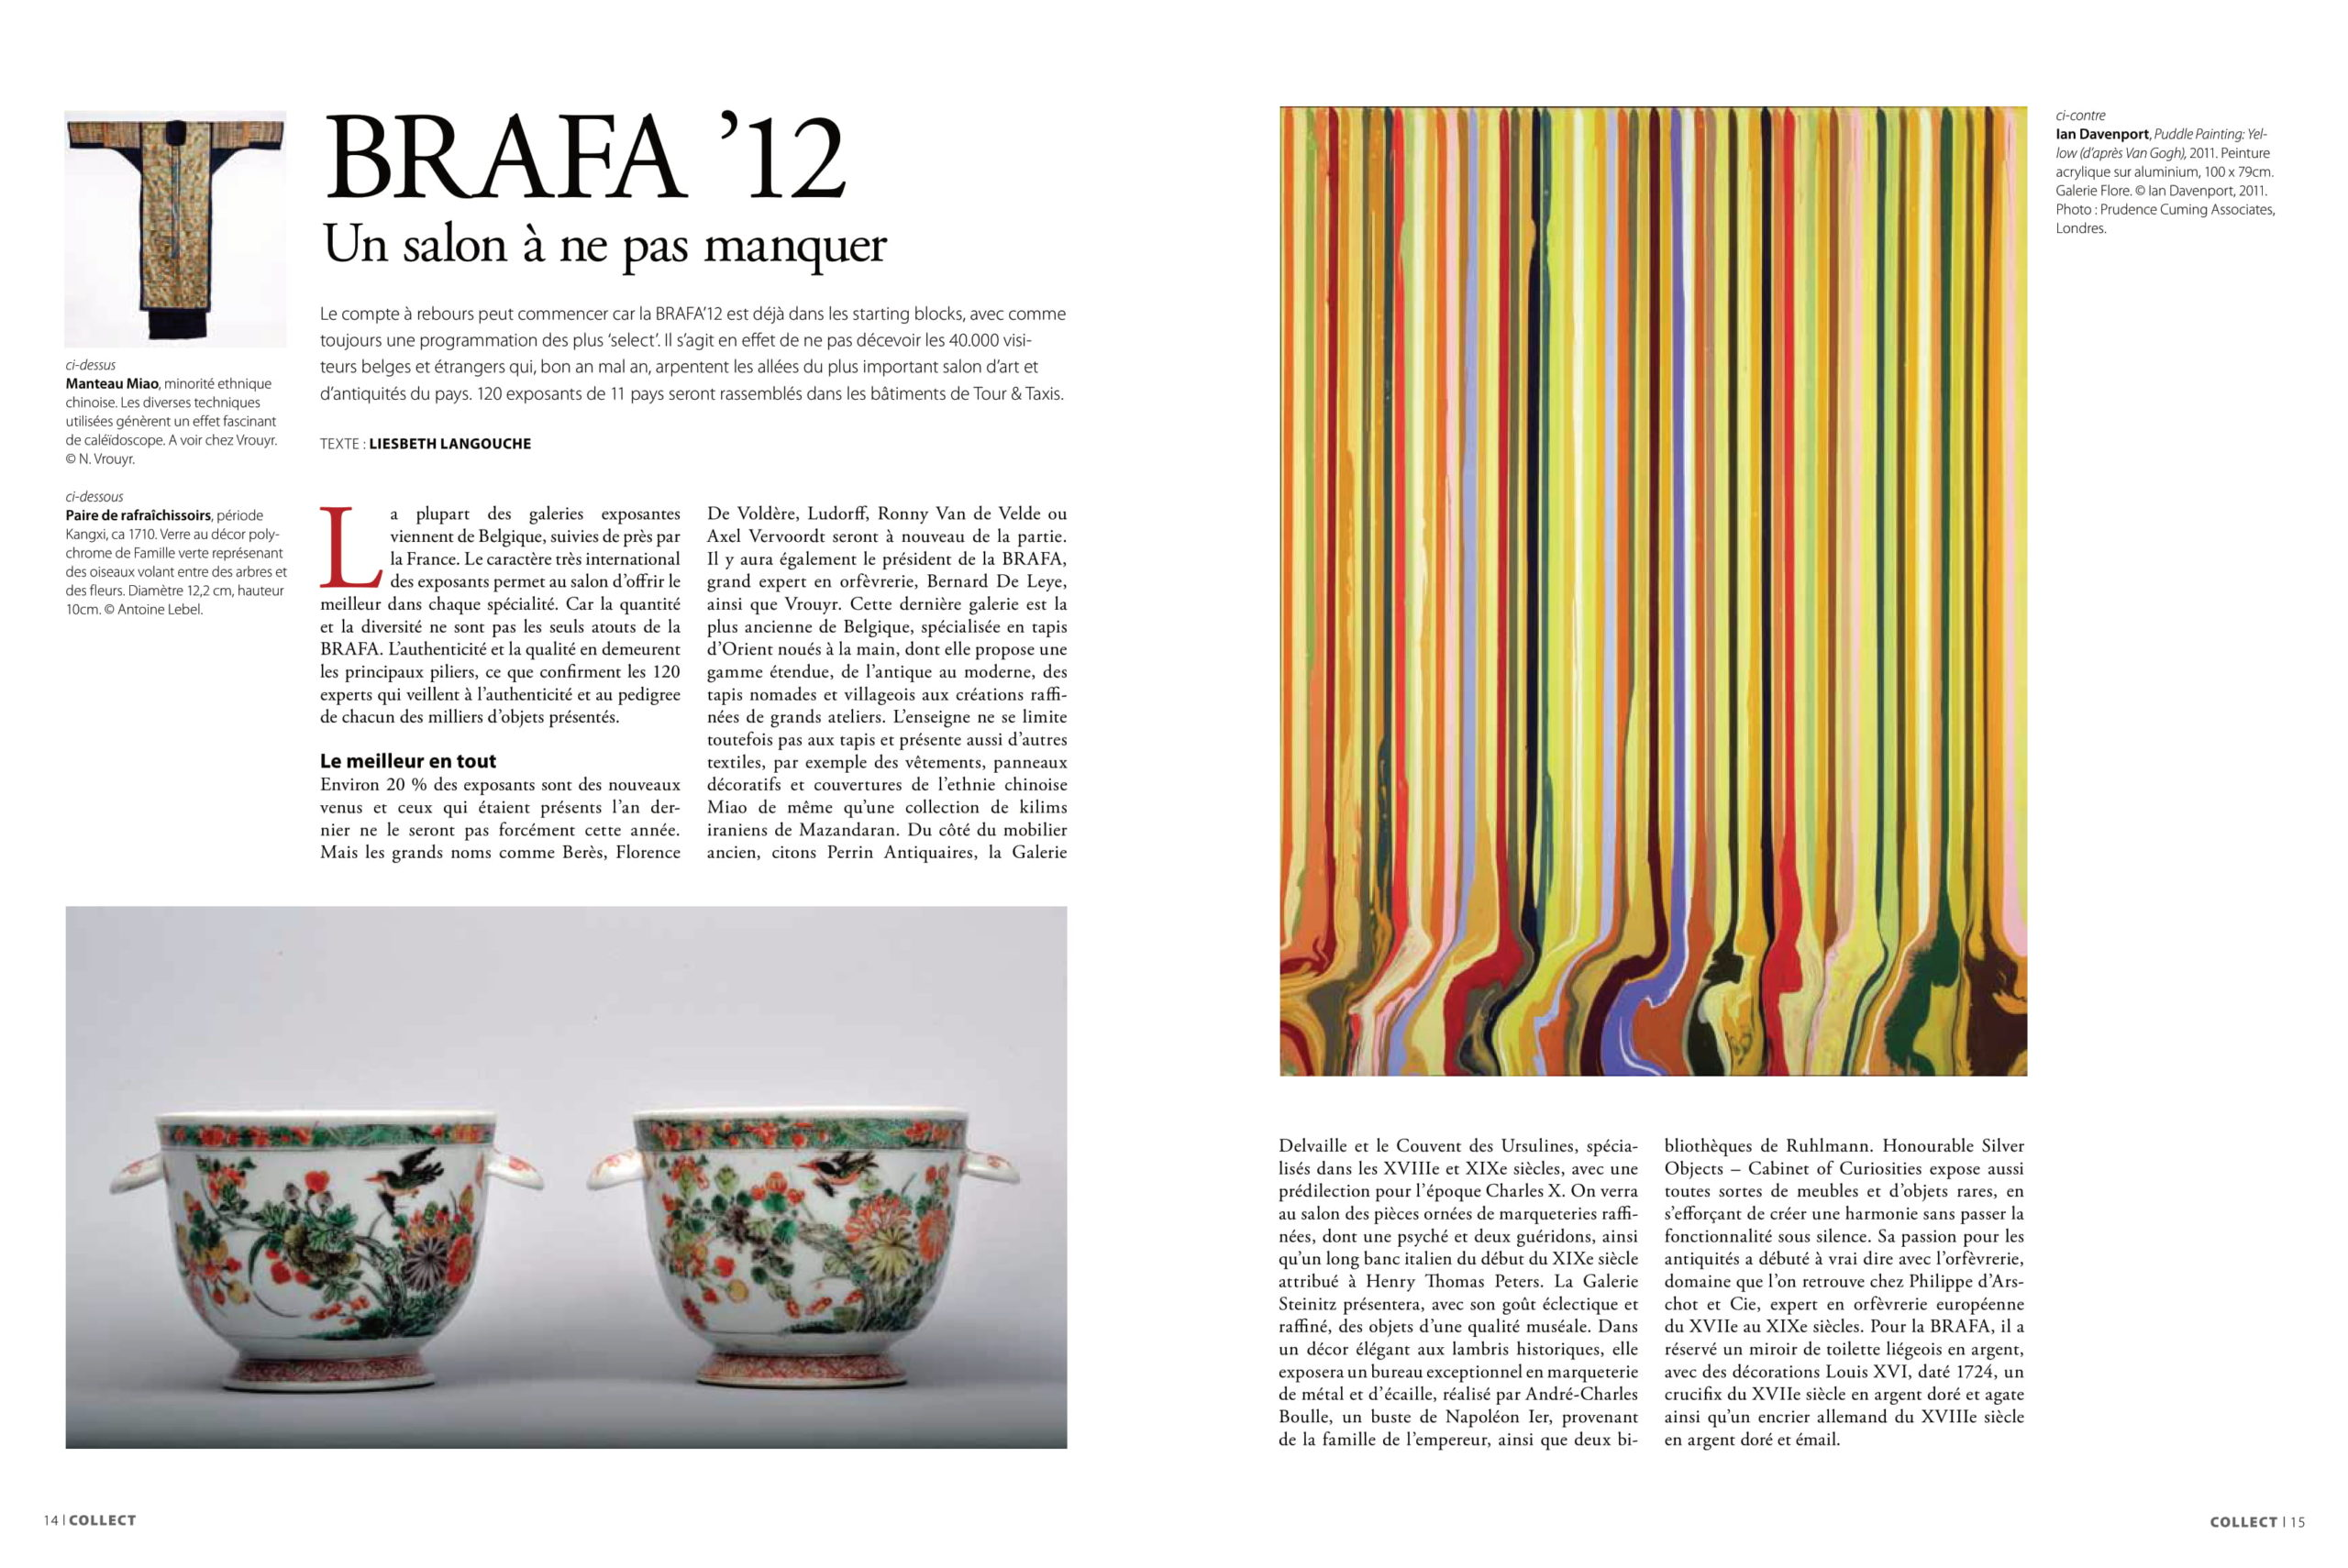 Collect AAA (fr) — Dec. 2011